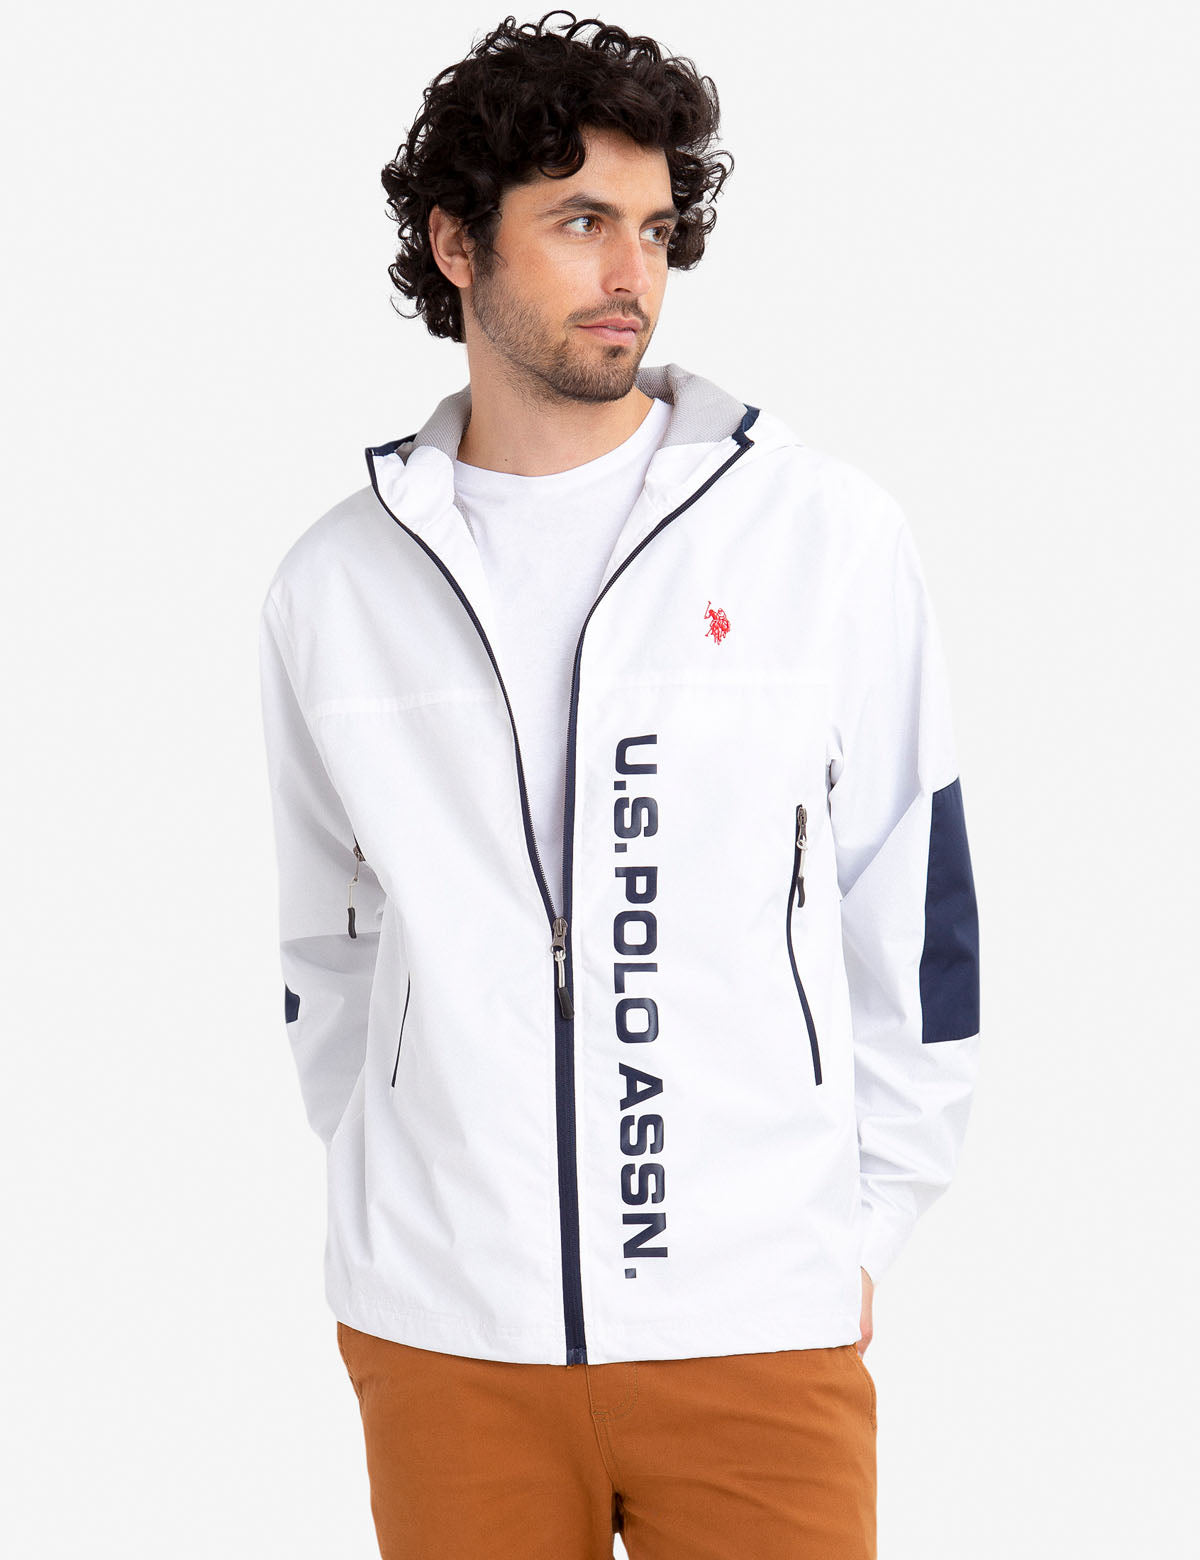 GRAPHIC LOGO WINDBREAKER - U.S. Polo Assn.